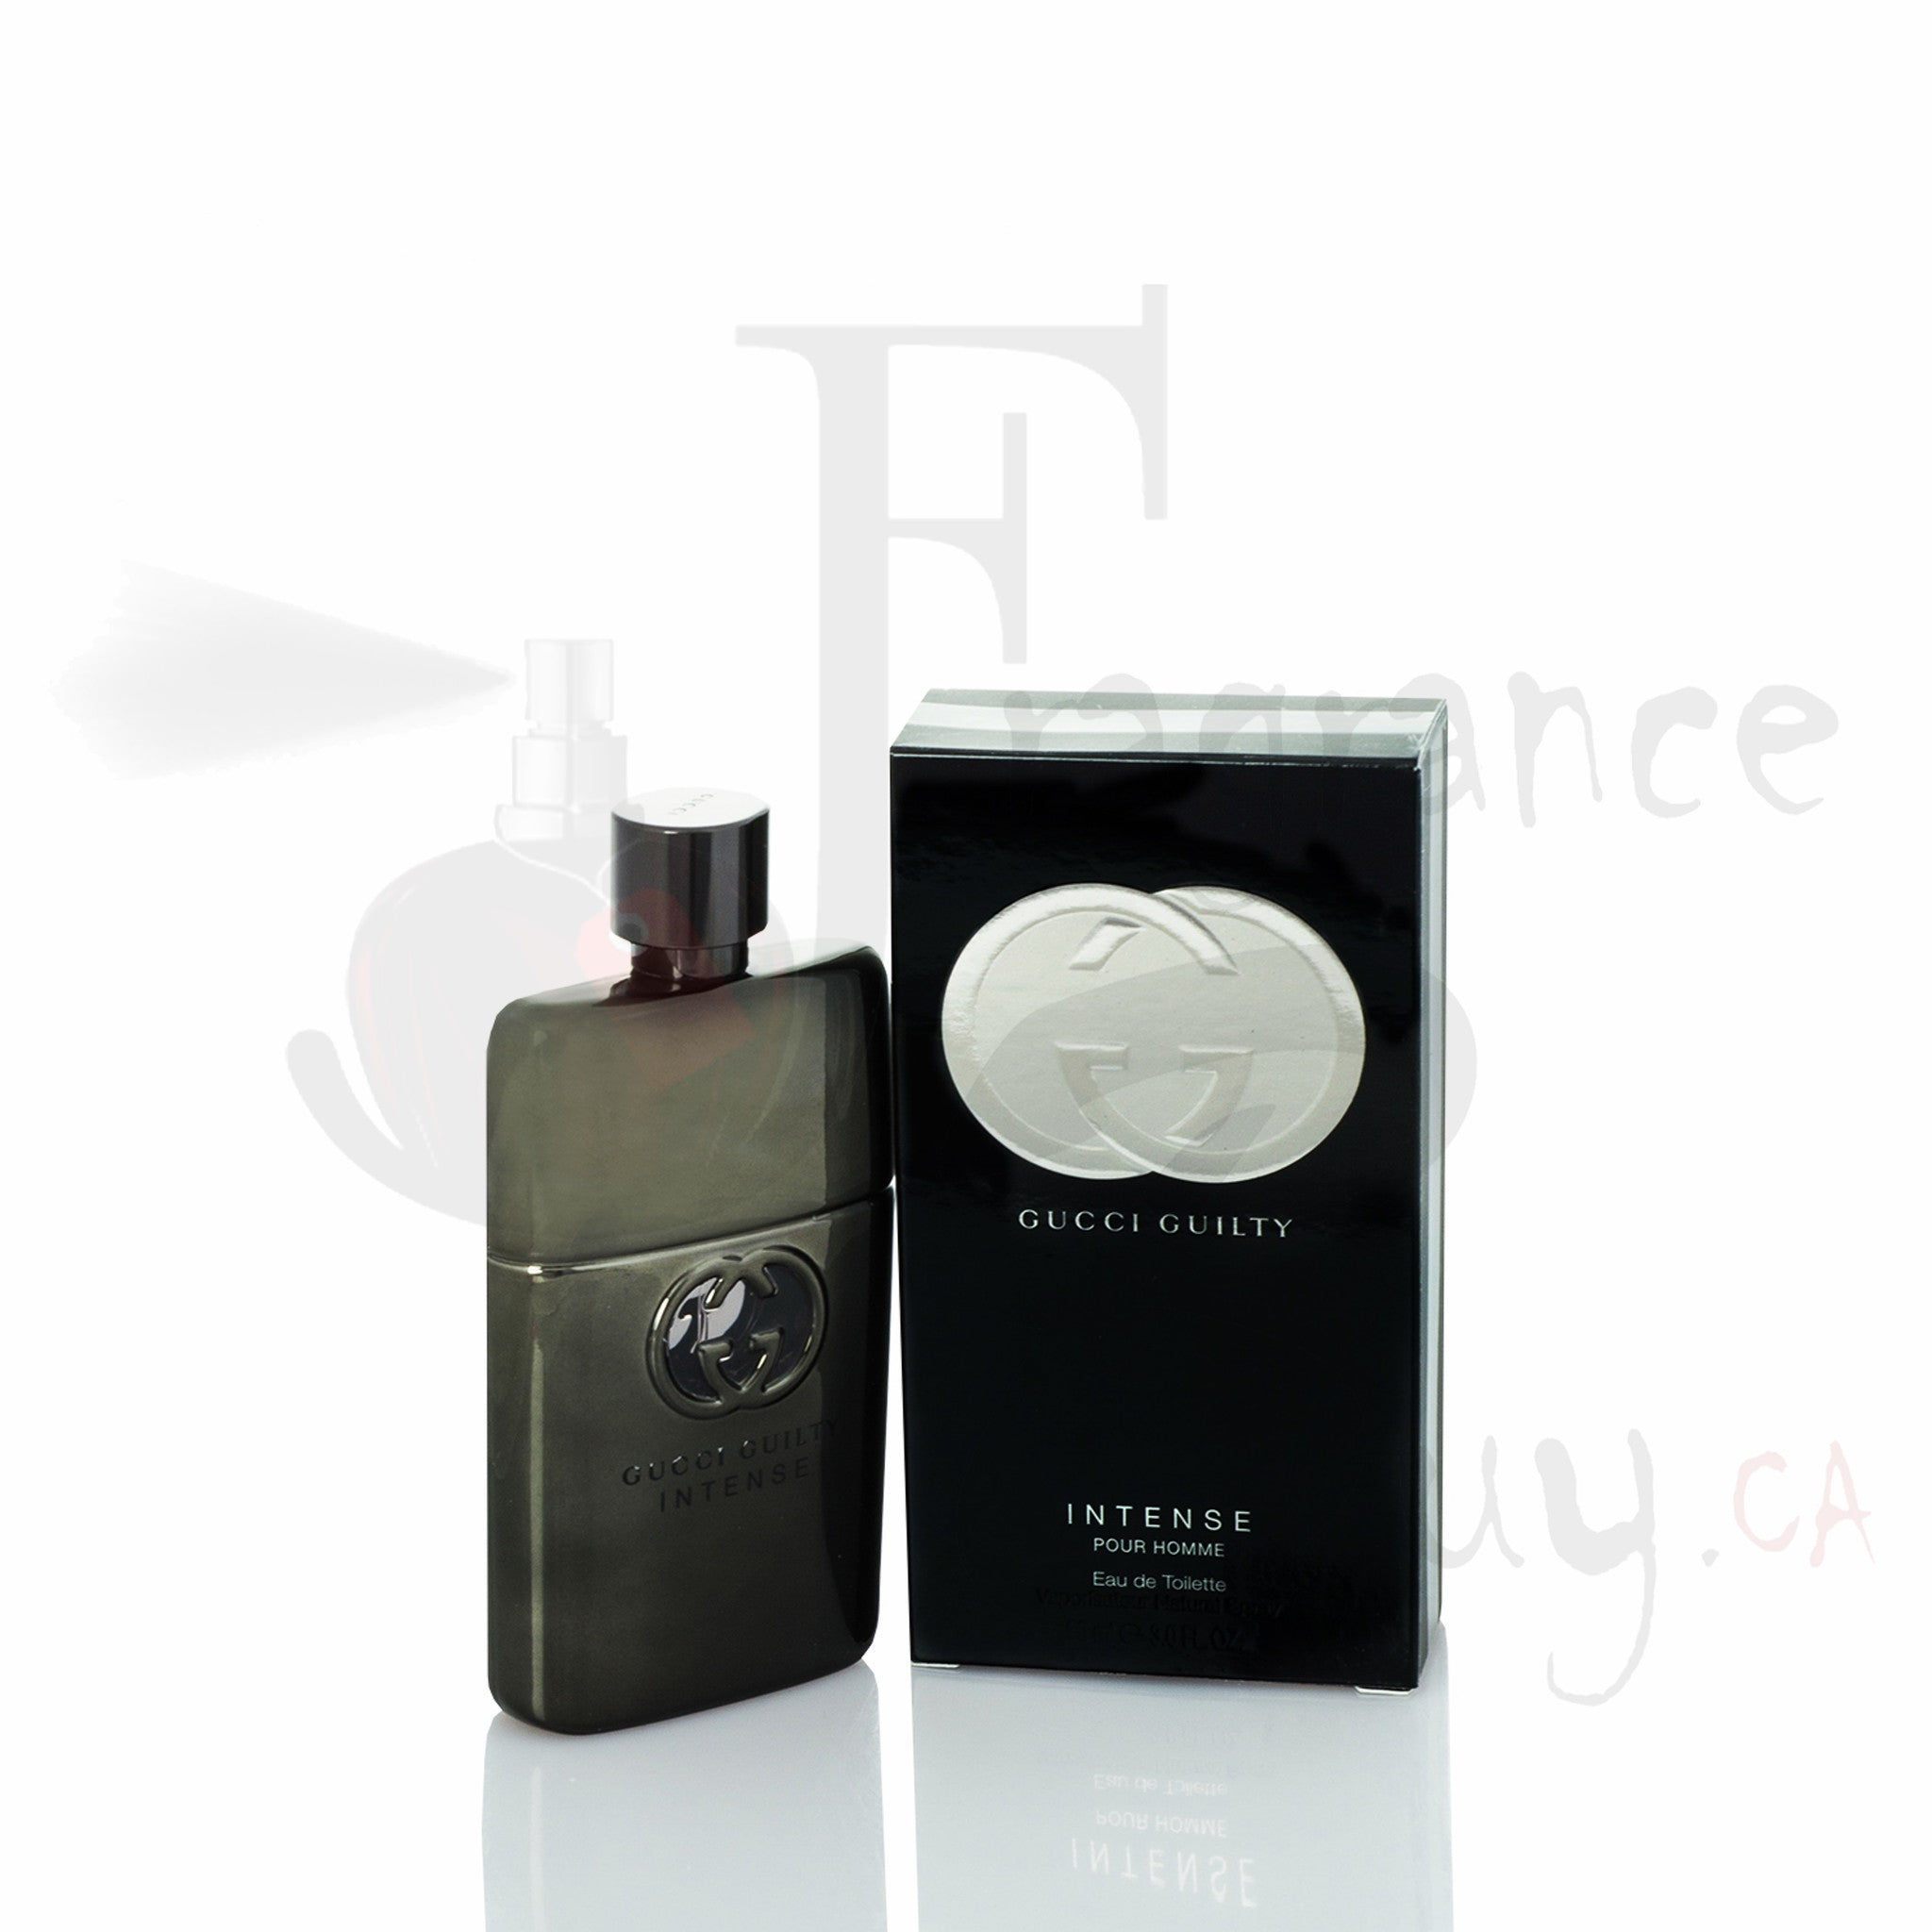 Gucci Guilty Intense For Man